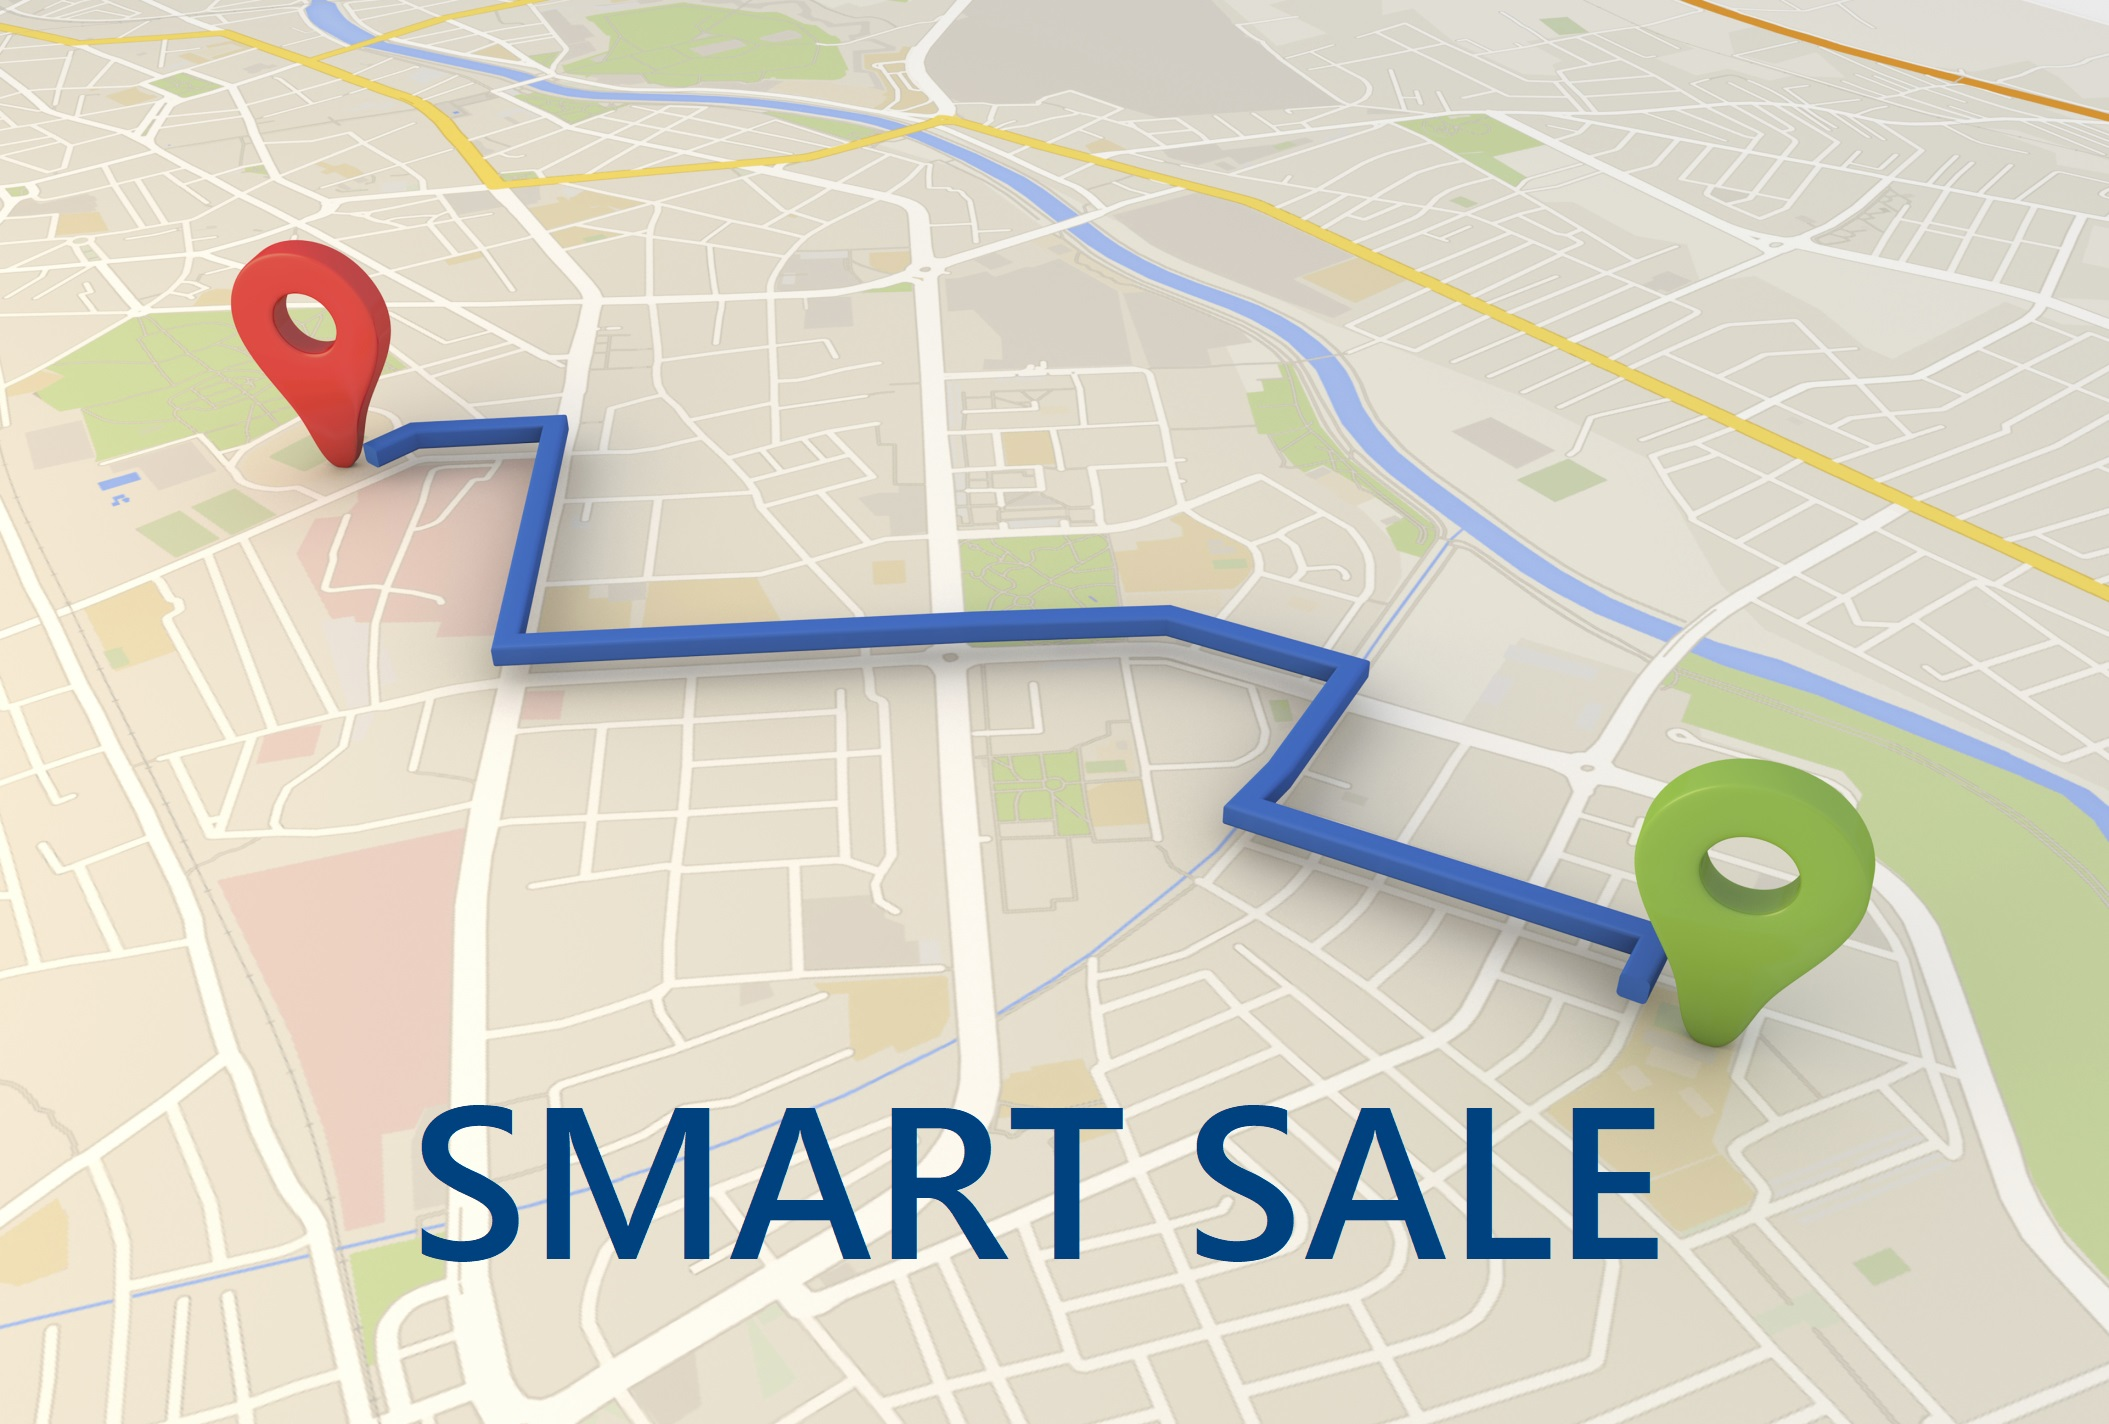 8 Elements of a Smart Sale